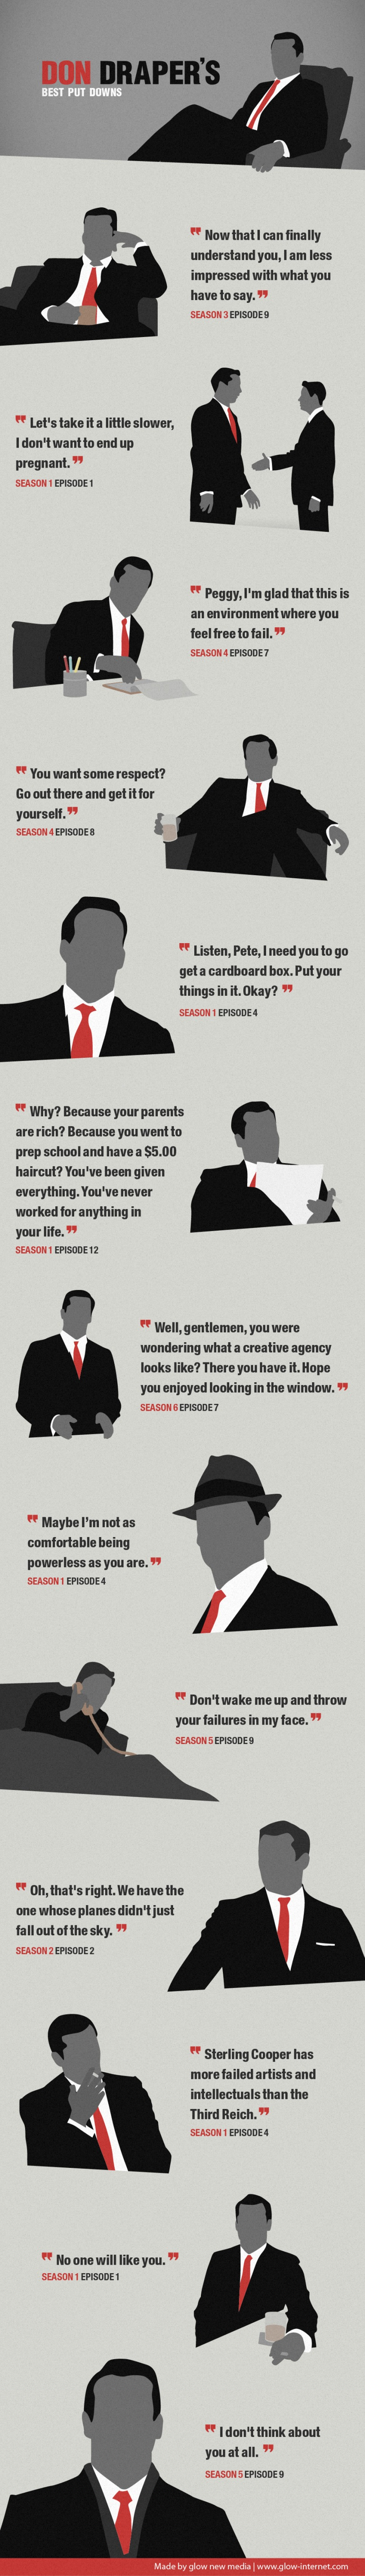 Don Draper's Best Put Downs